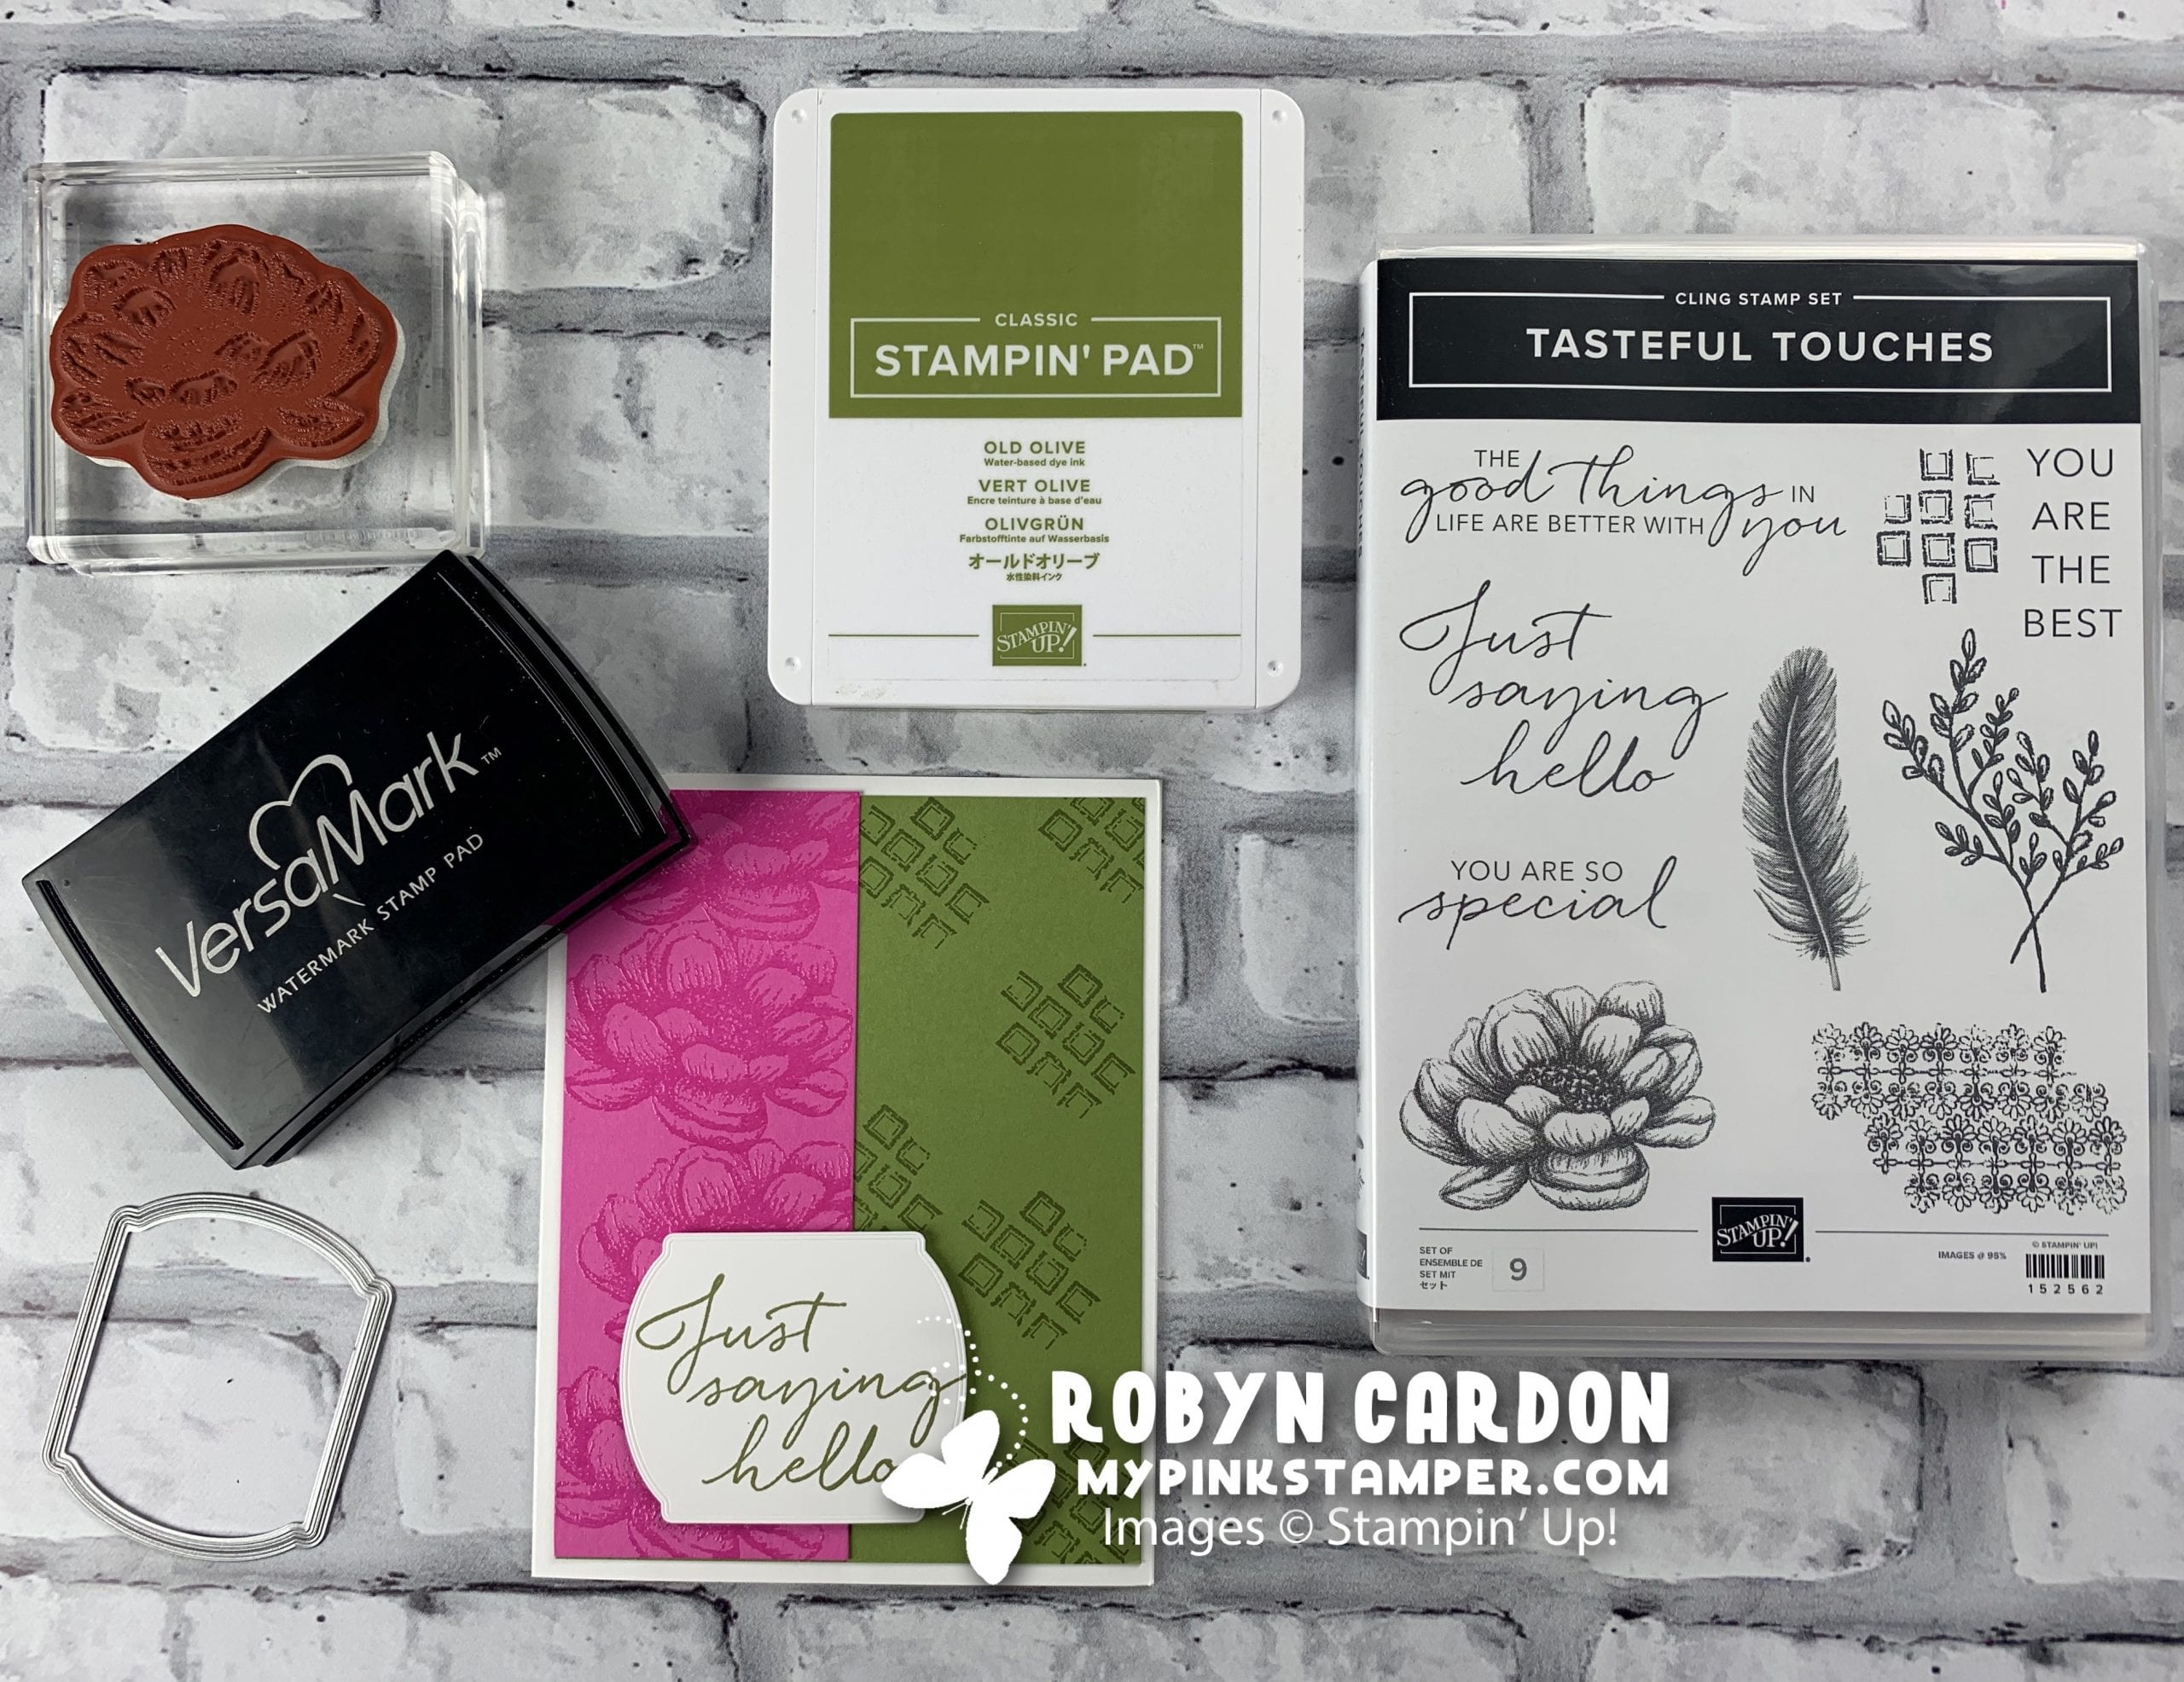 {VIDEO}Episode 781 – Stampin' Up! Tasteful Touches Card & NEW Catalog Release w/ 2 Promotions!!